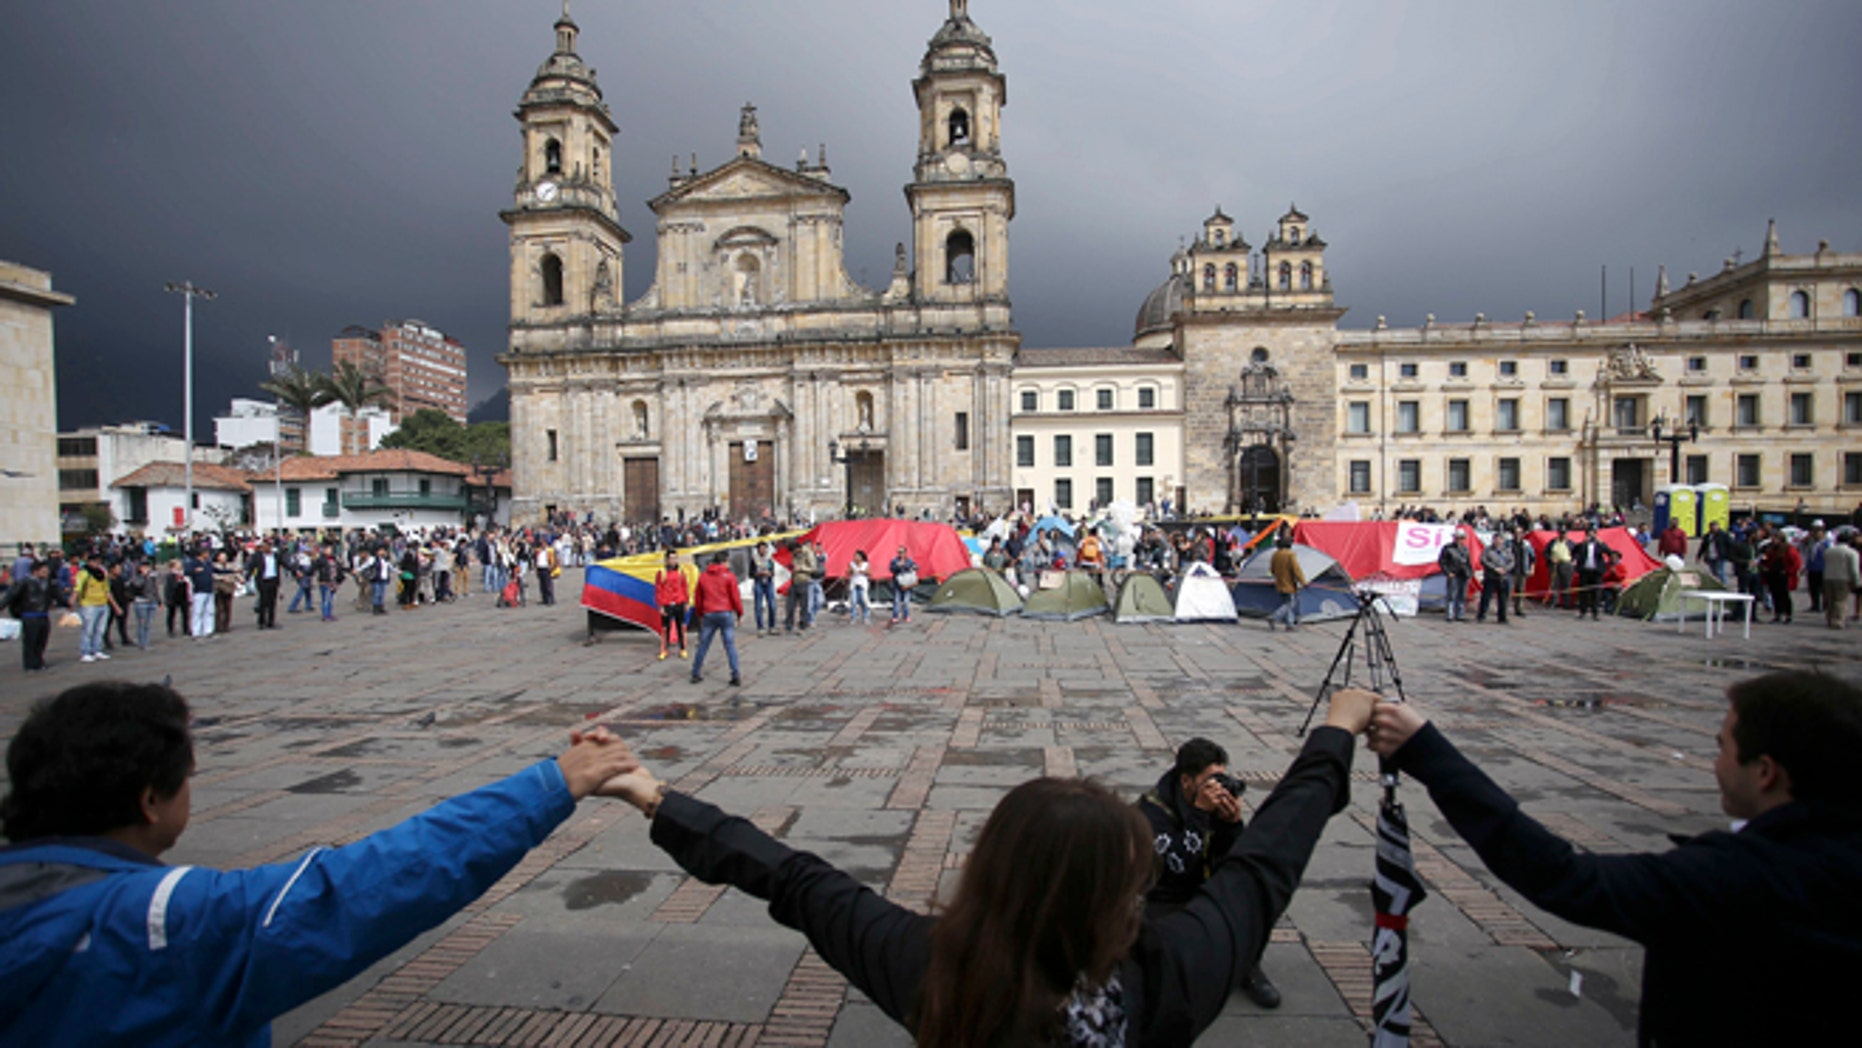 Demonstrators hold hands to support a peace accord between the Colombian government and rebels of the Revolutionary Armed Forces of Colombia, FARC, at the main square in Bogotá, Colombia, Saturday, Oct. 8, 2016. Dozens of people are camping at the Bolívar square in support of the peace process. Voters narrowly rejected in a referendum a peace accord signed between President Juan Manuel Santos and the FARC. (AP Photo/Ivan Valencia)